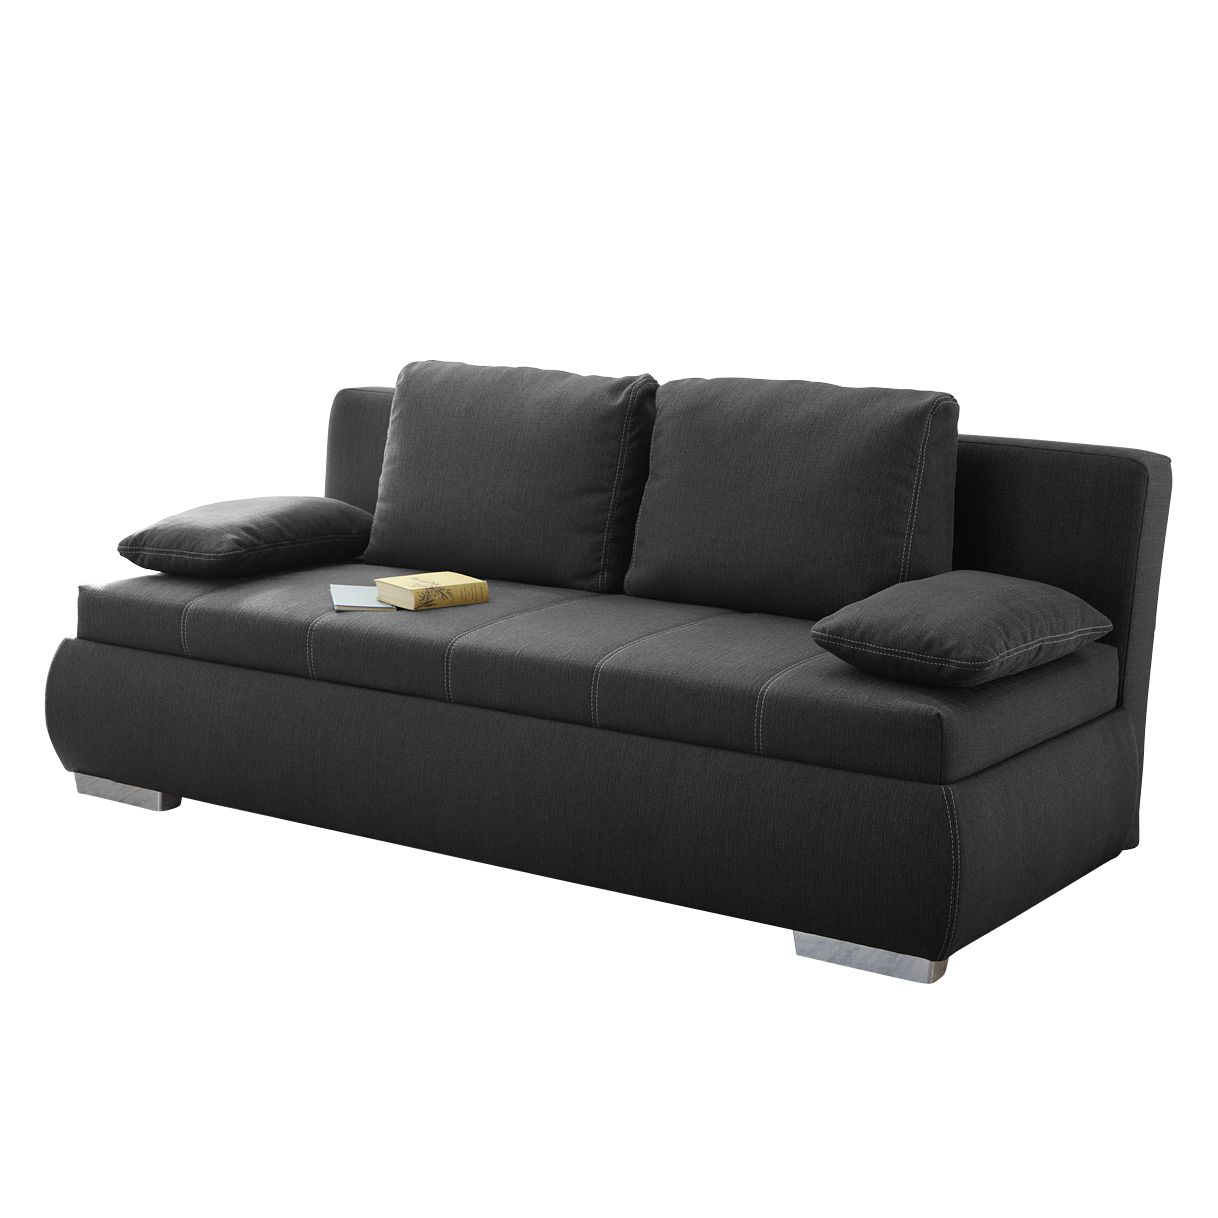 Boxspring Kaufen Boxspring Schlafsofa Madang Webstoff Anthrazit Fredriks